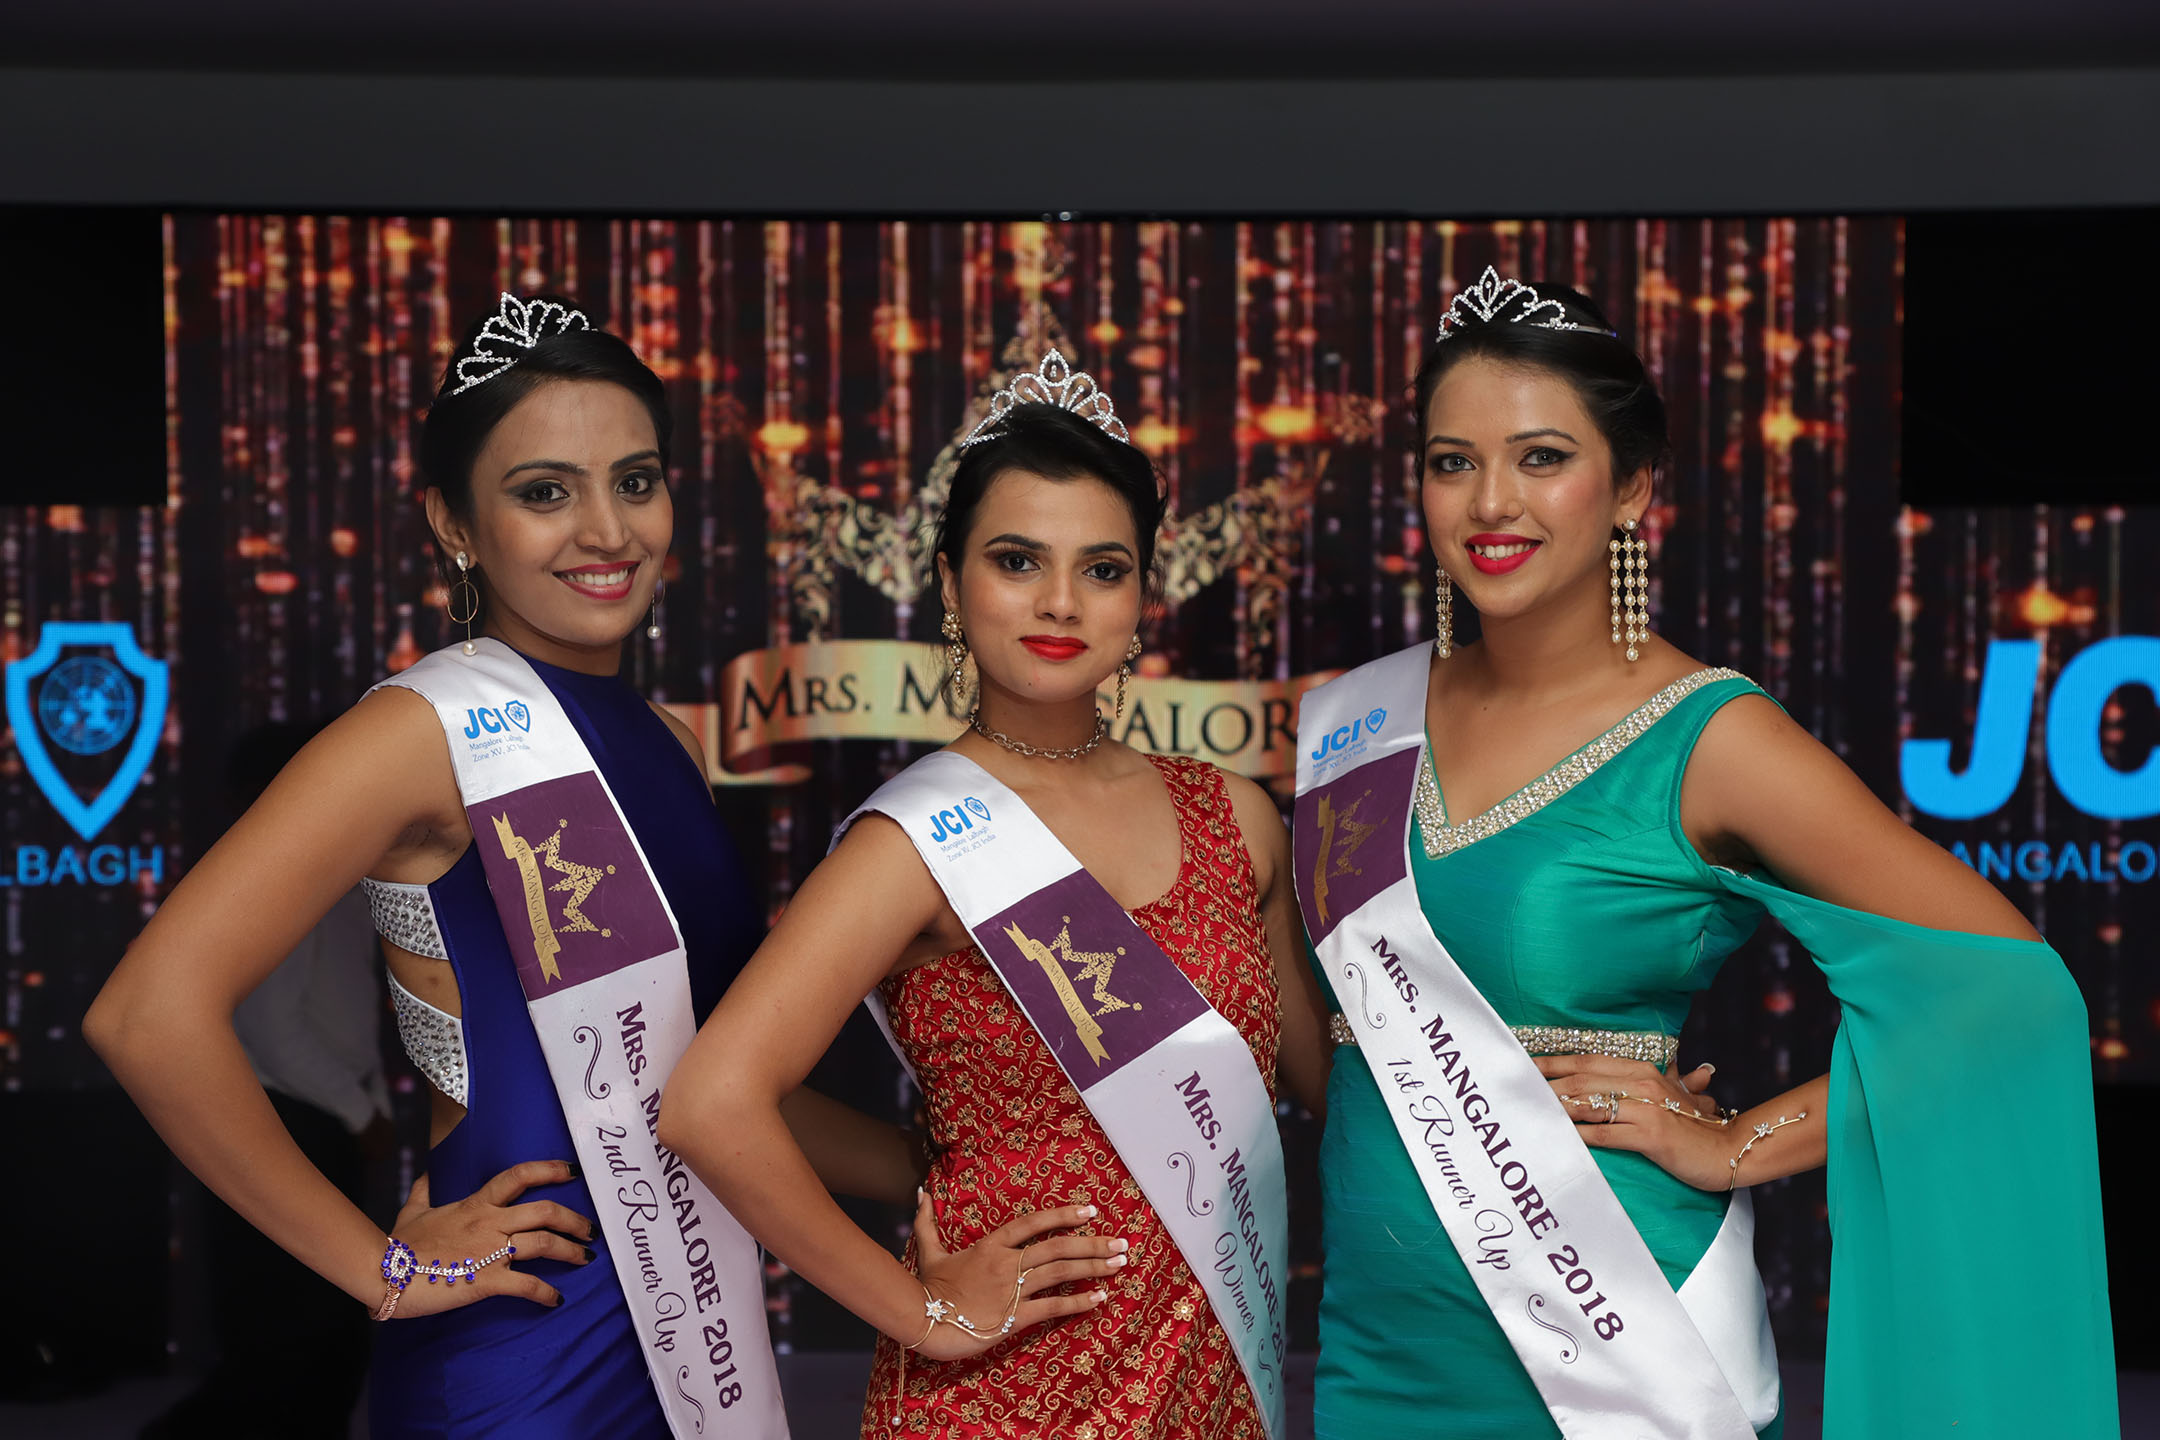 Sudheeksha Kiran, who was crowned Mrs Mangalore 2018, flanked by Hera Pinto and Angelita Lewis who won the first and second runners-up titles respectively.